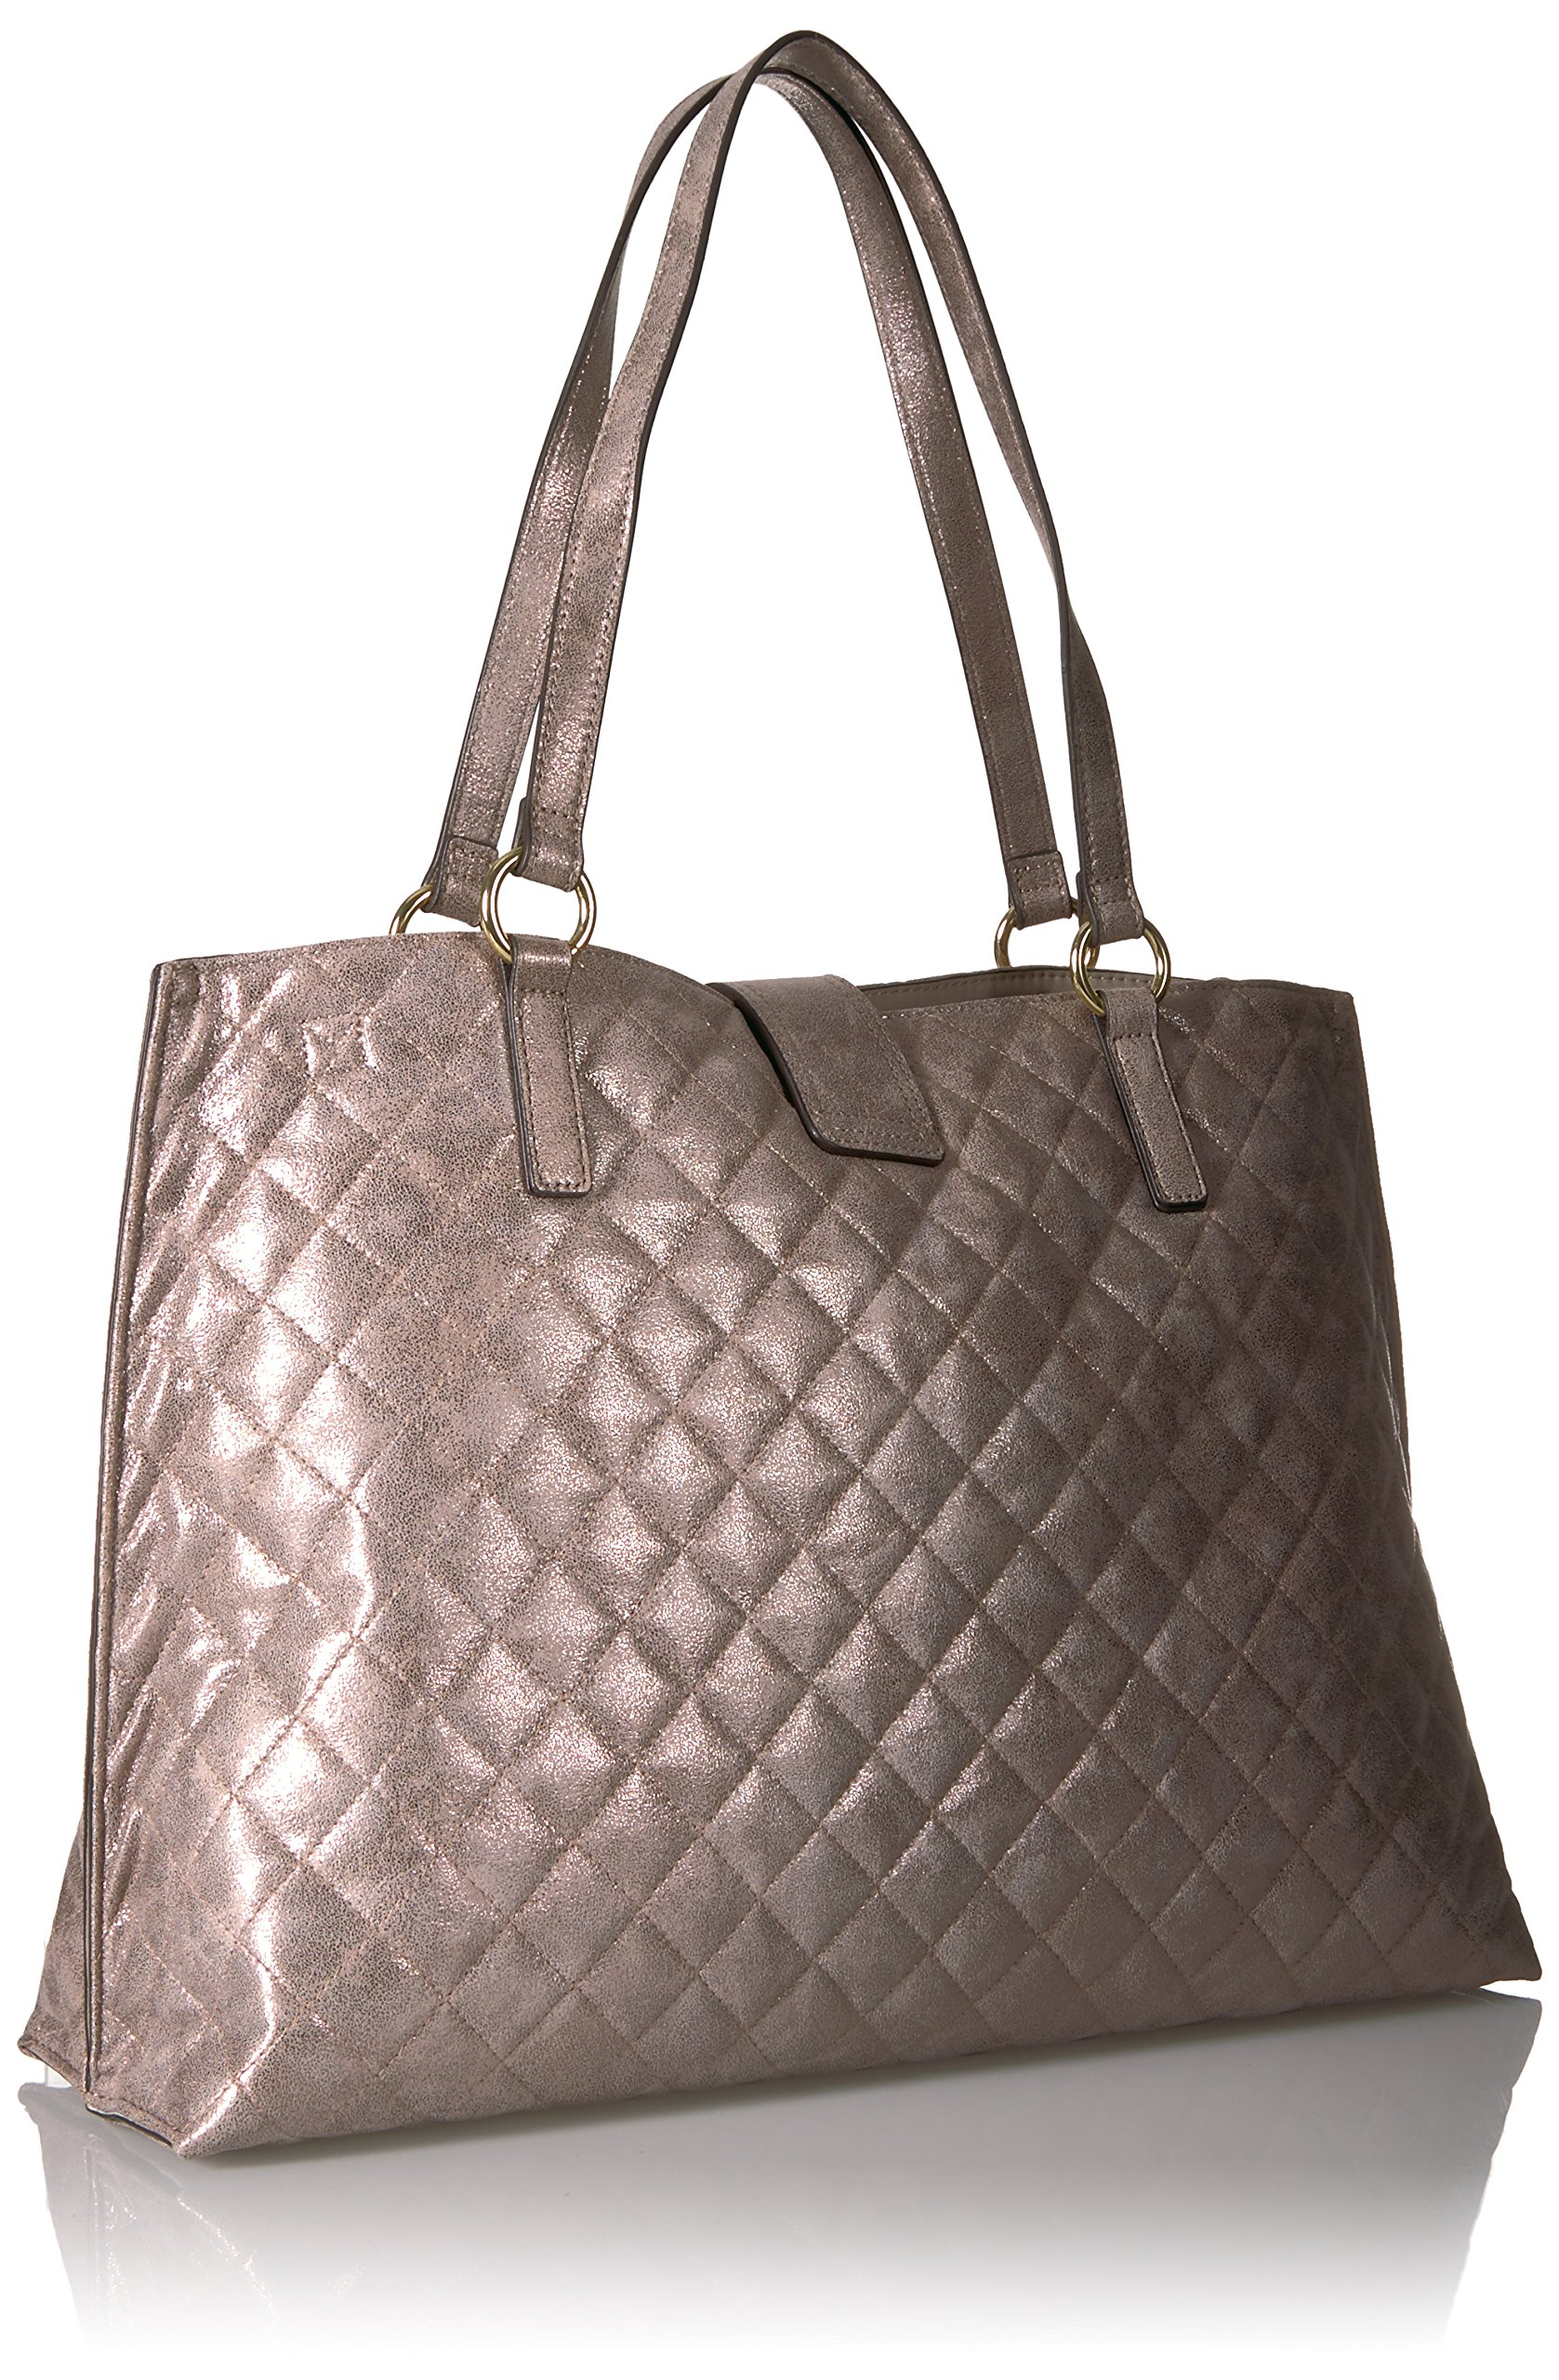 Calvin Klein Quilted Distressed Novelty Tote, Mtallic Taupe by Calvin Klein (Image #2)